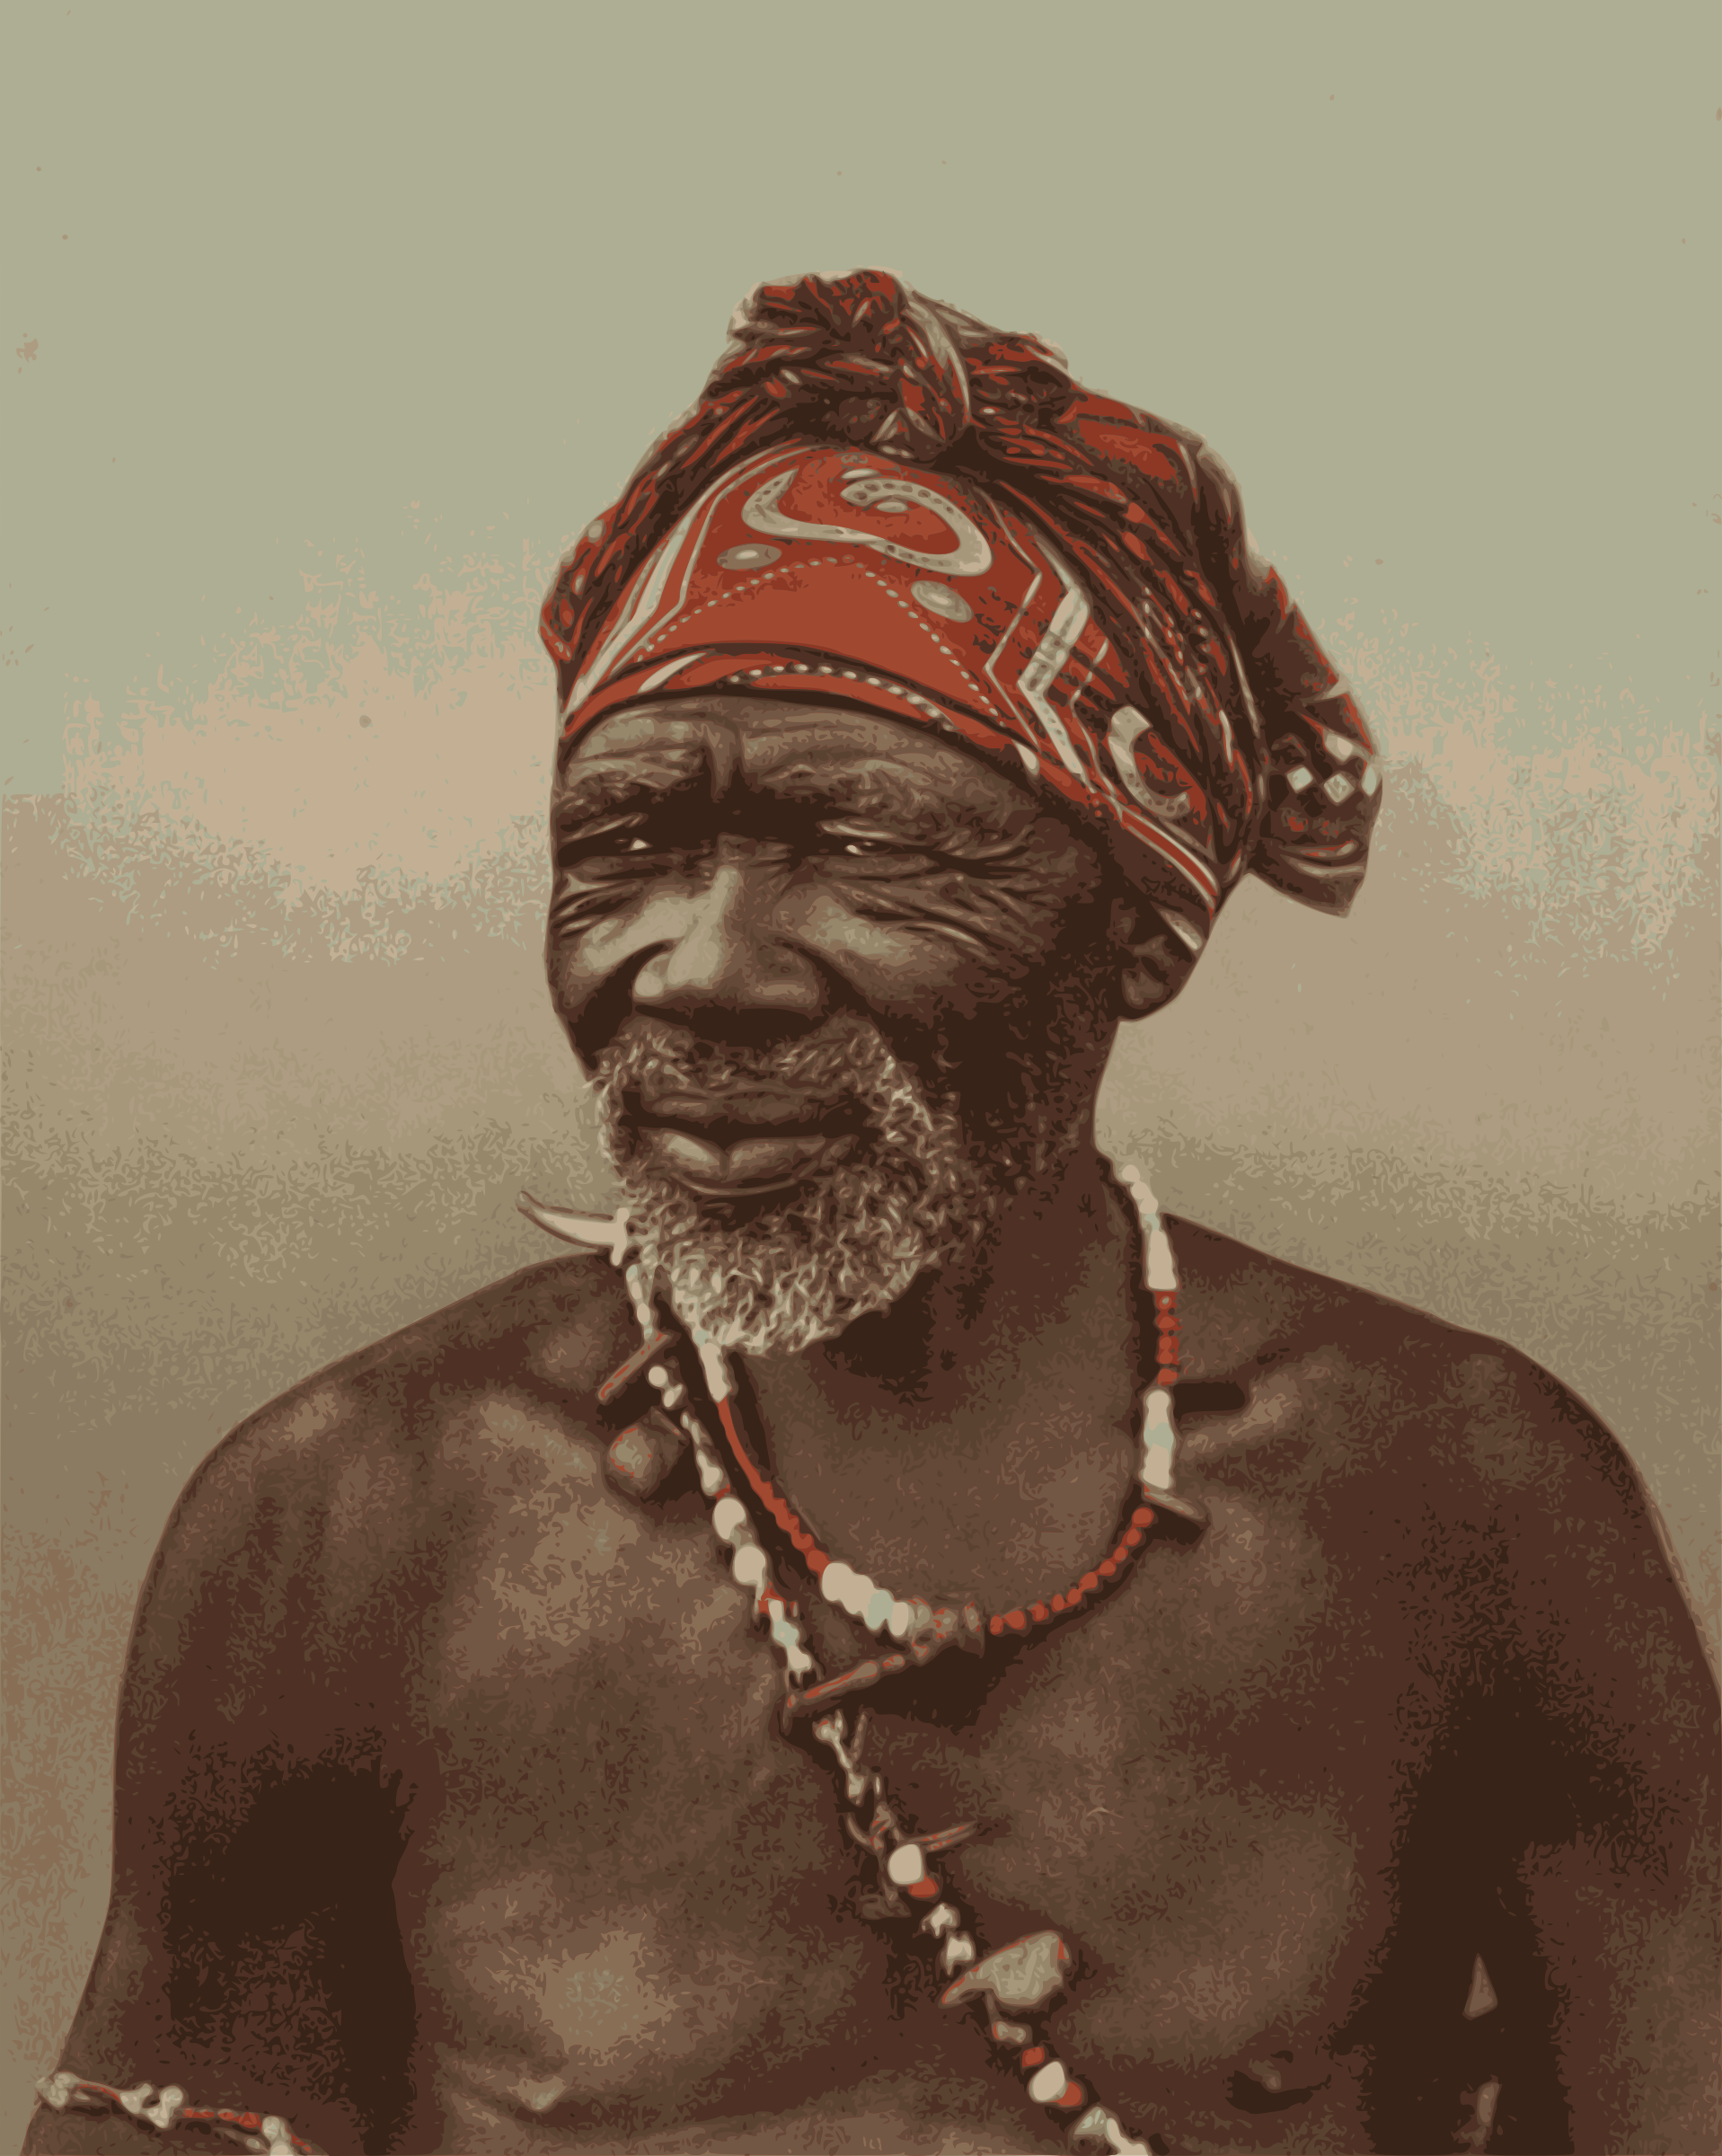 South African Medicine Man by j4p4n